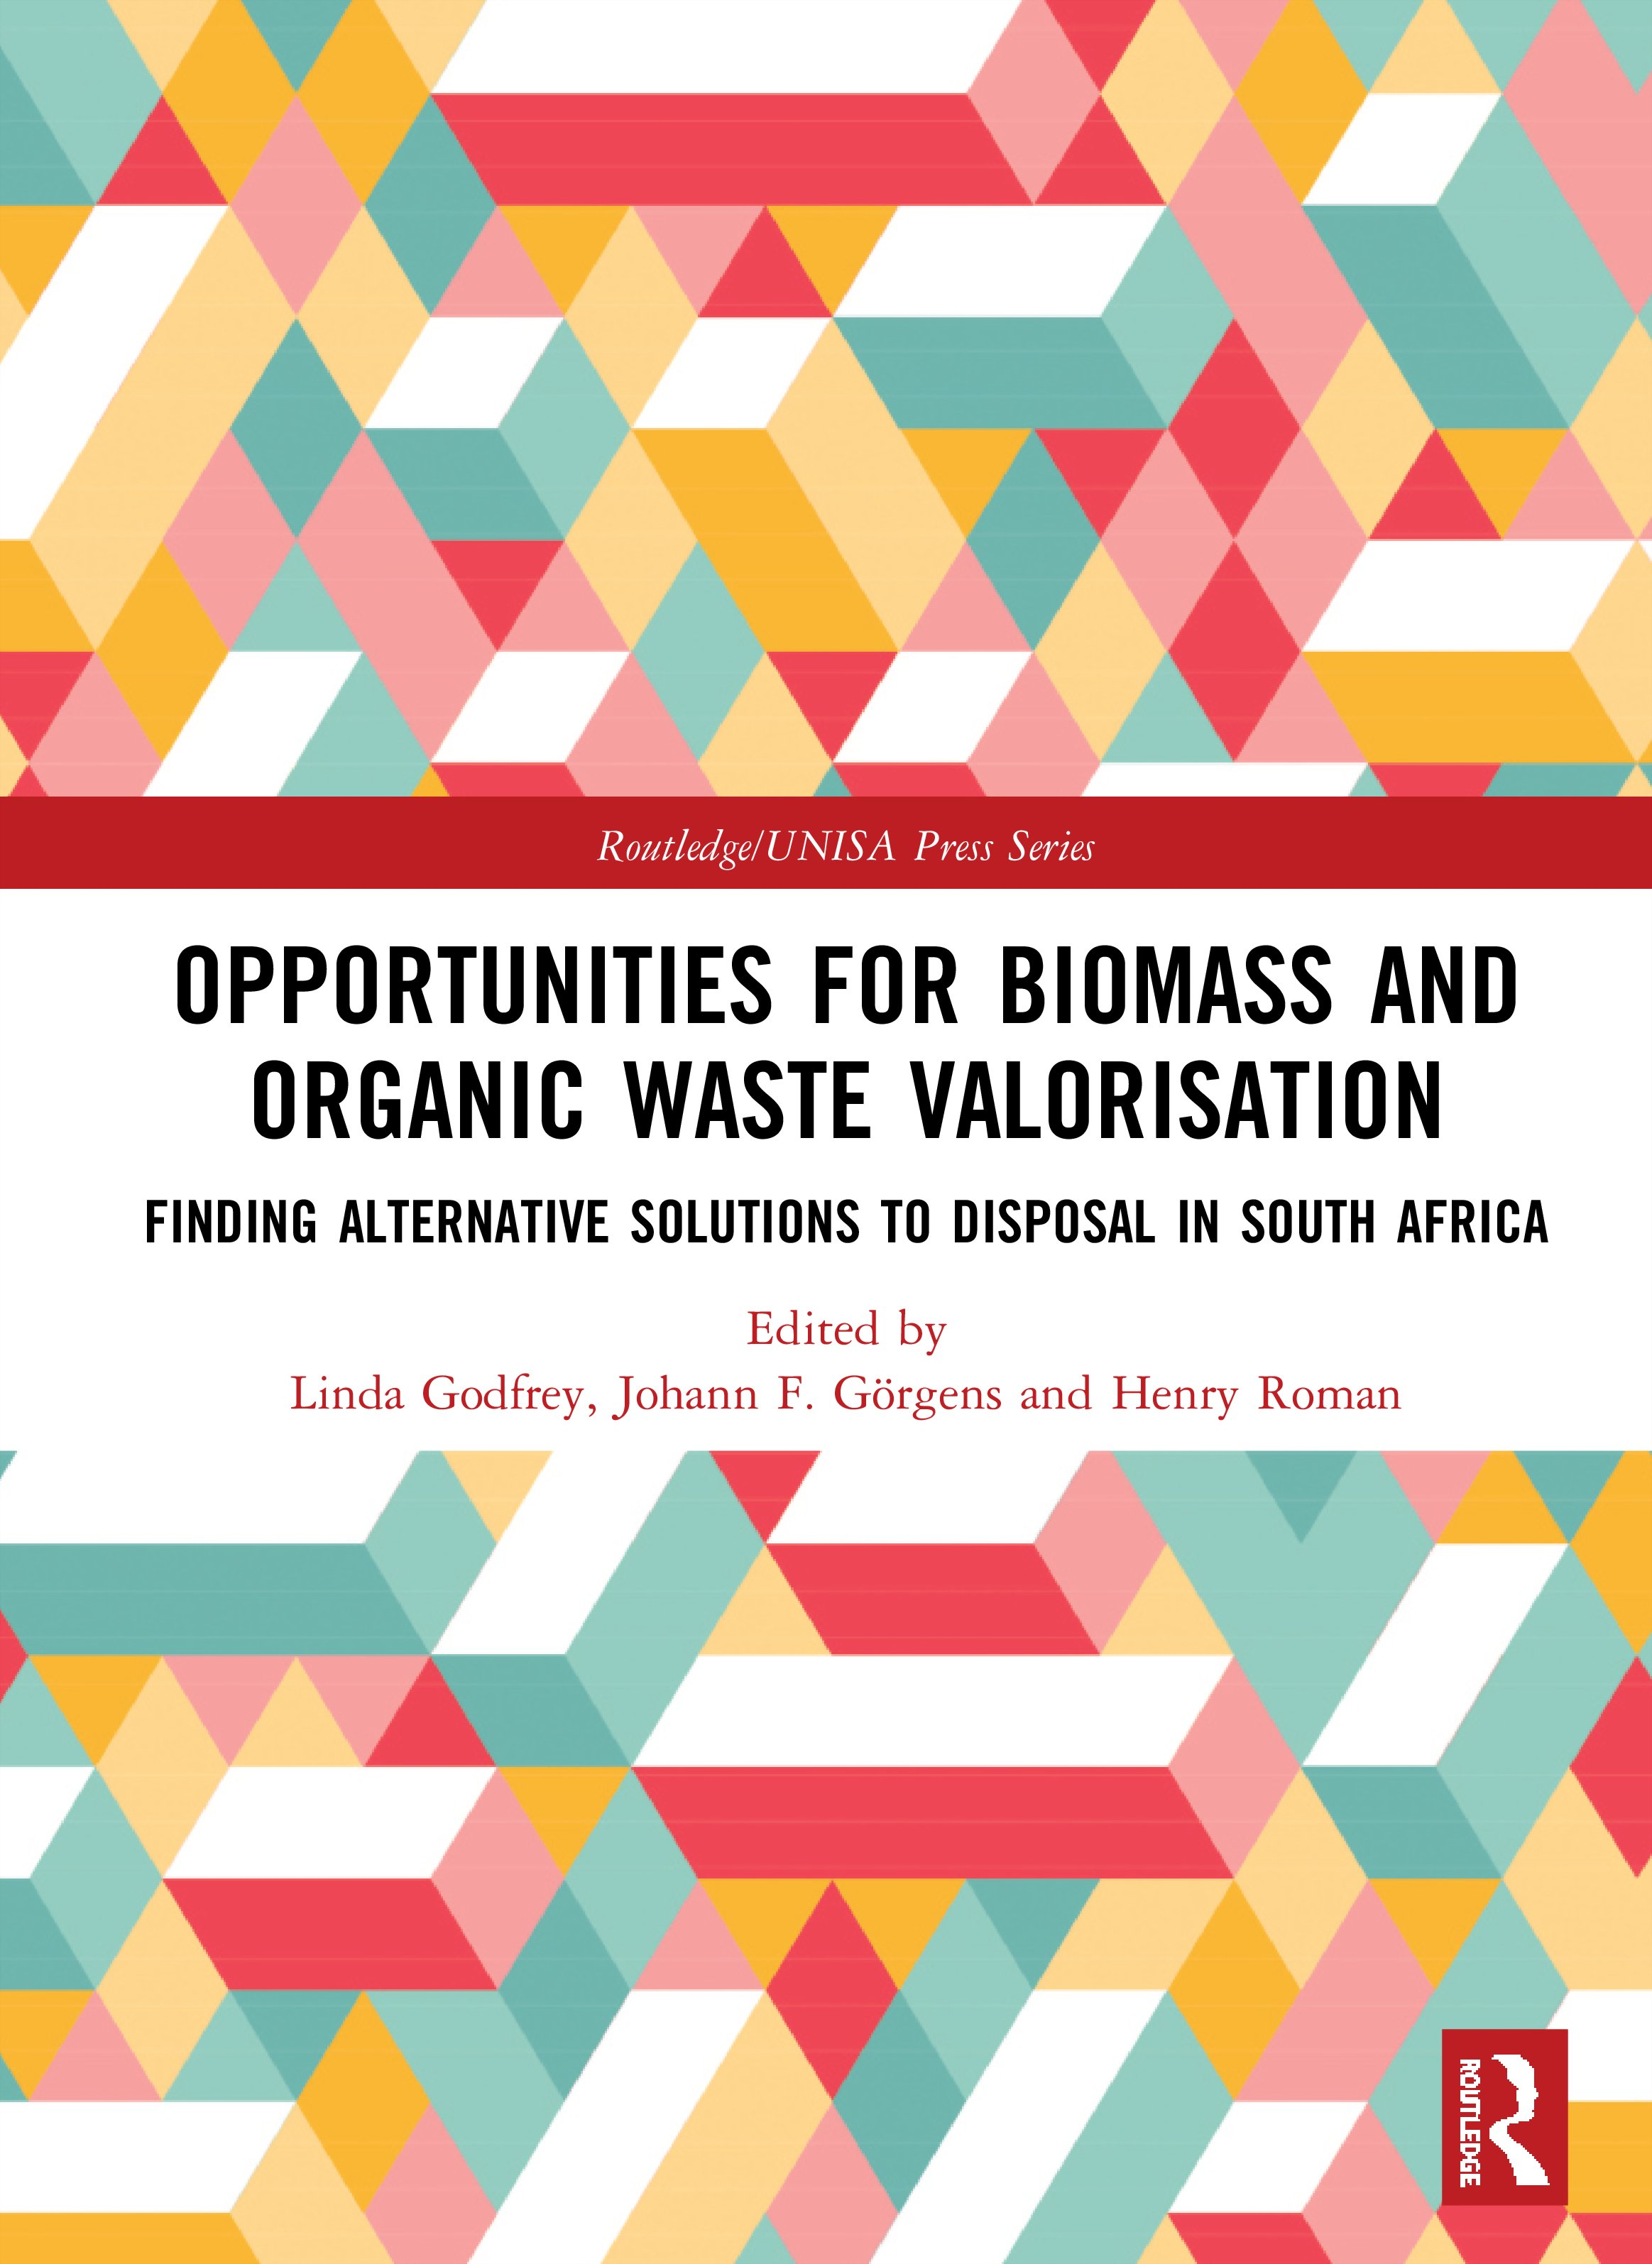 Opportunities for Biomass and Organic Waste Valorisation: Finding Alternative Solutions to Disposal in South Africa book cover